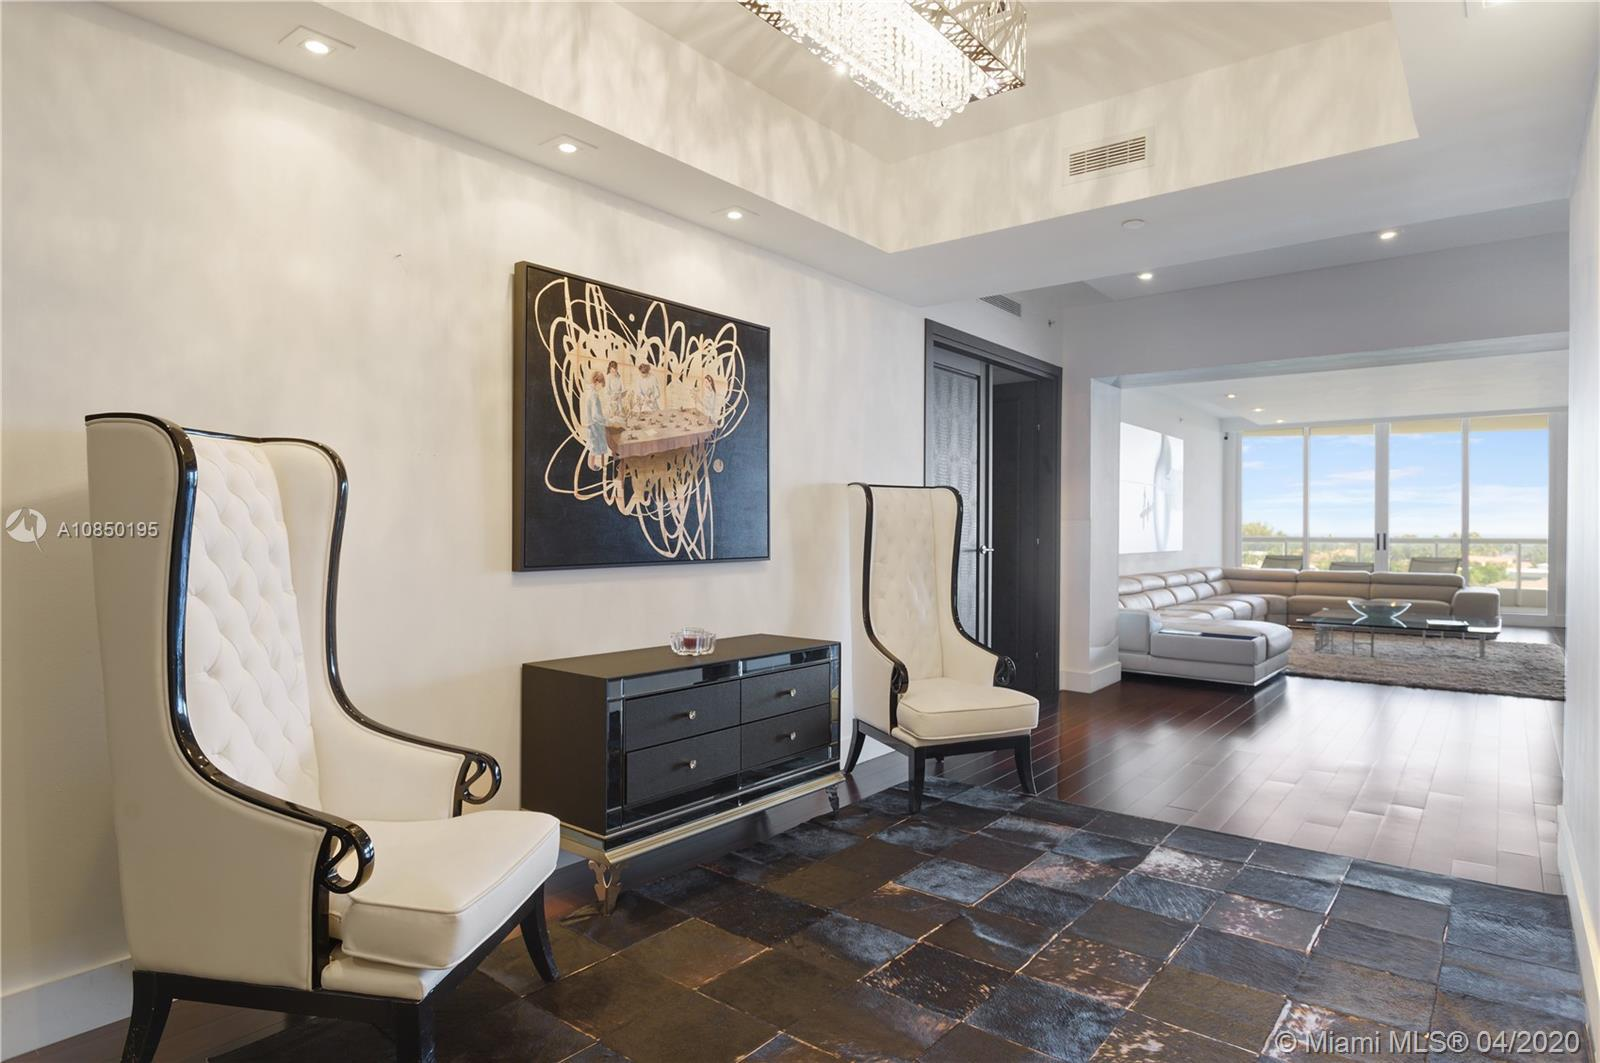 Beautiful renovated unit located in Atlantic One at The Point. This unit features 5 bedrooms, 5 bath